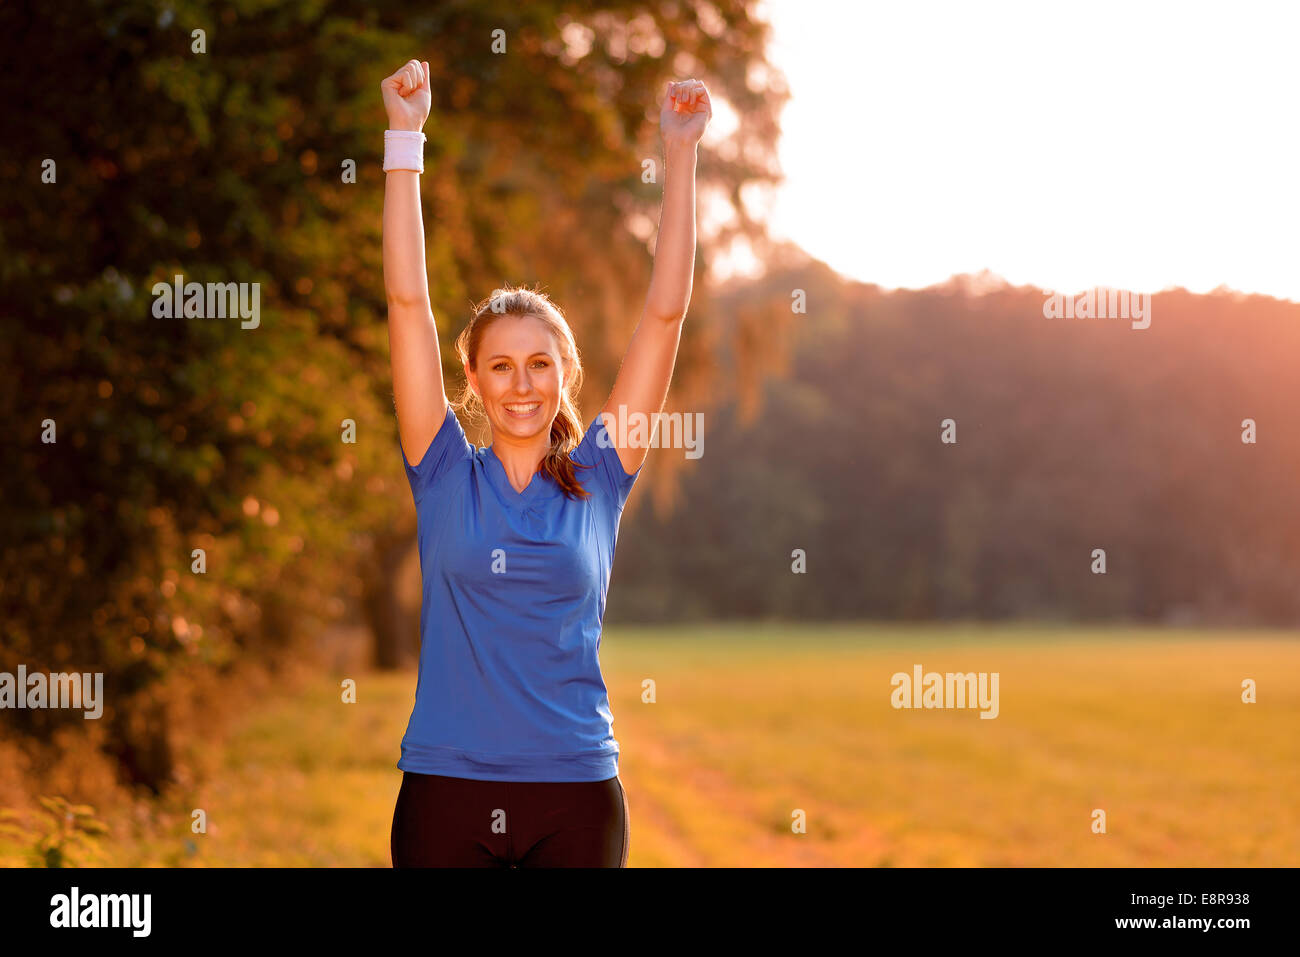 Jubilant young woman punching the air with her raised fists as she celebrates a success while standing in lush green - Stock Image